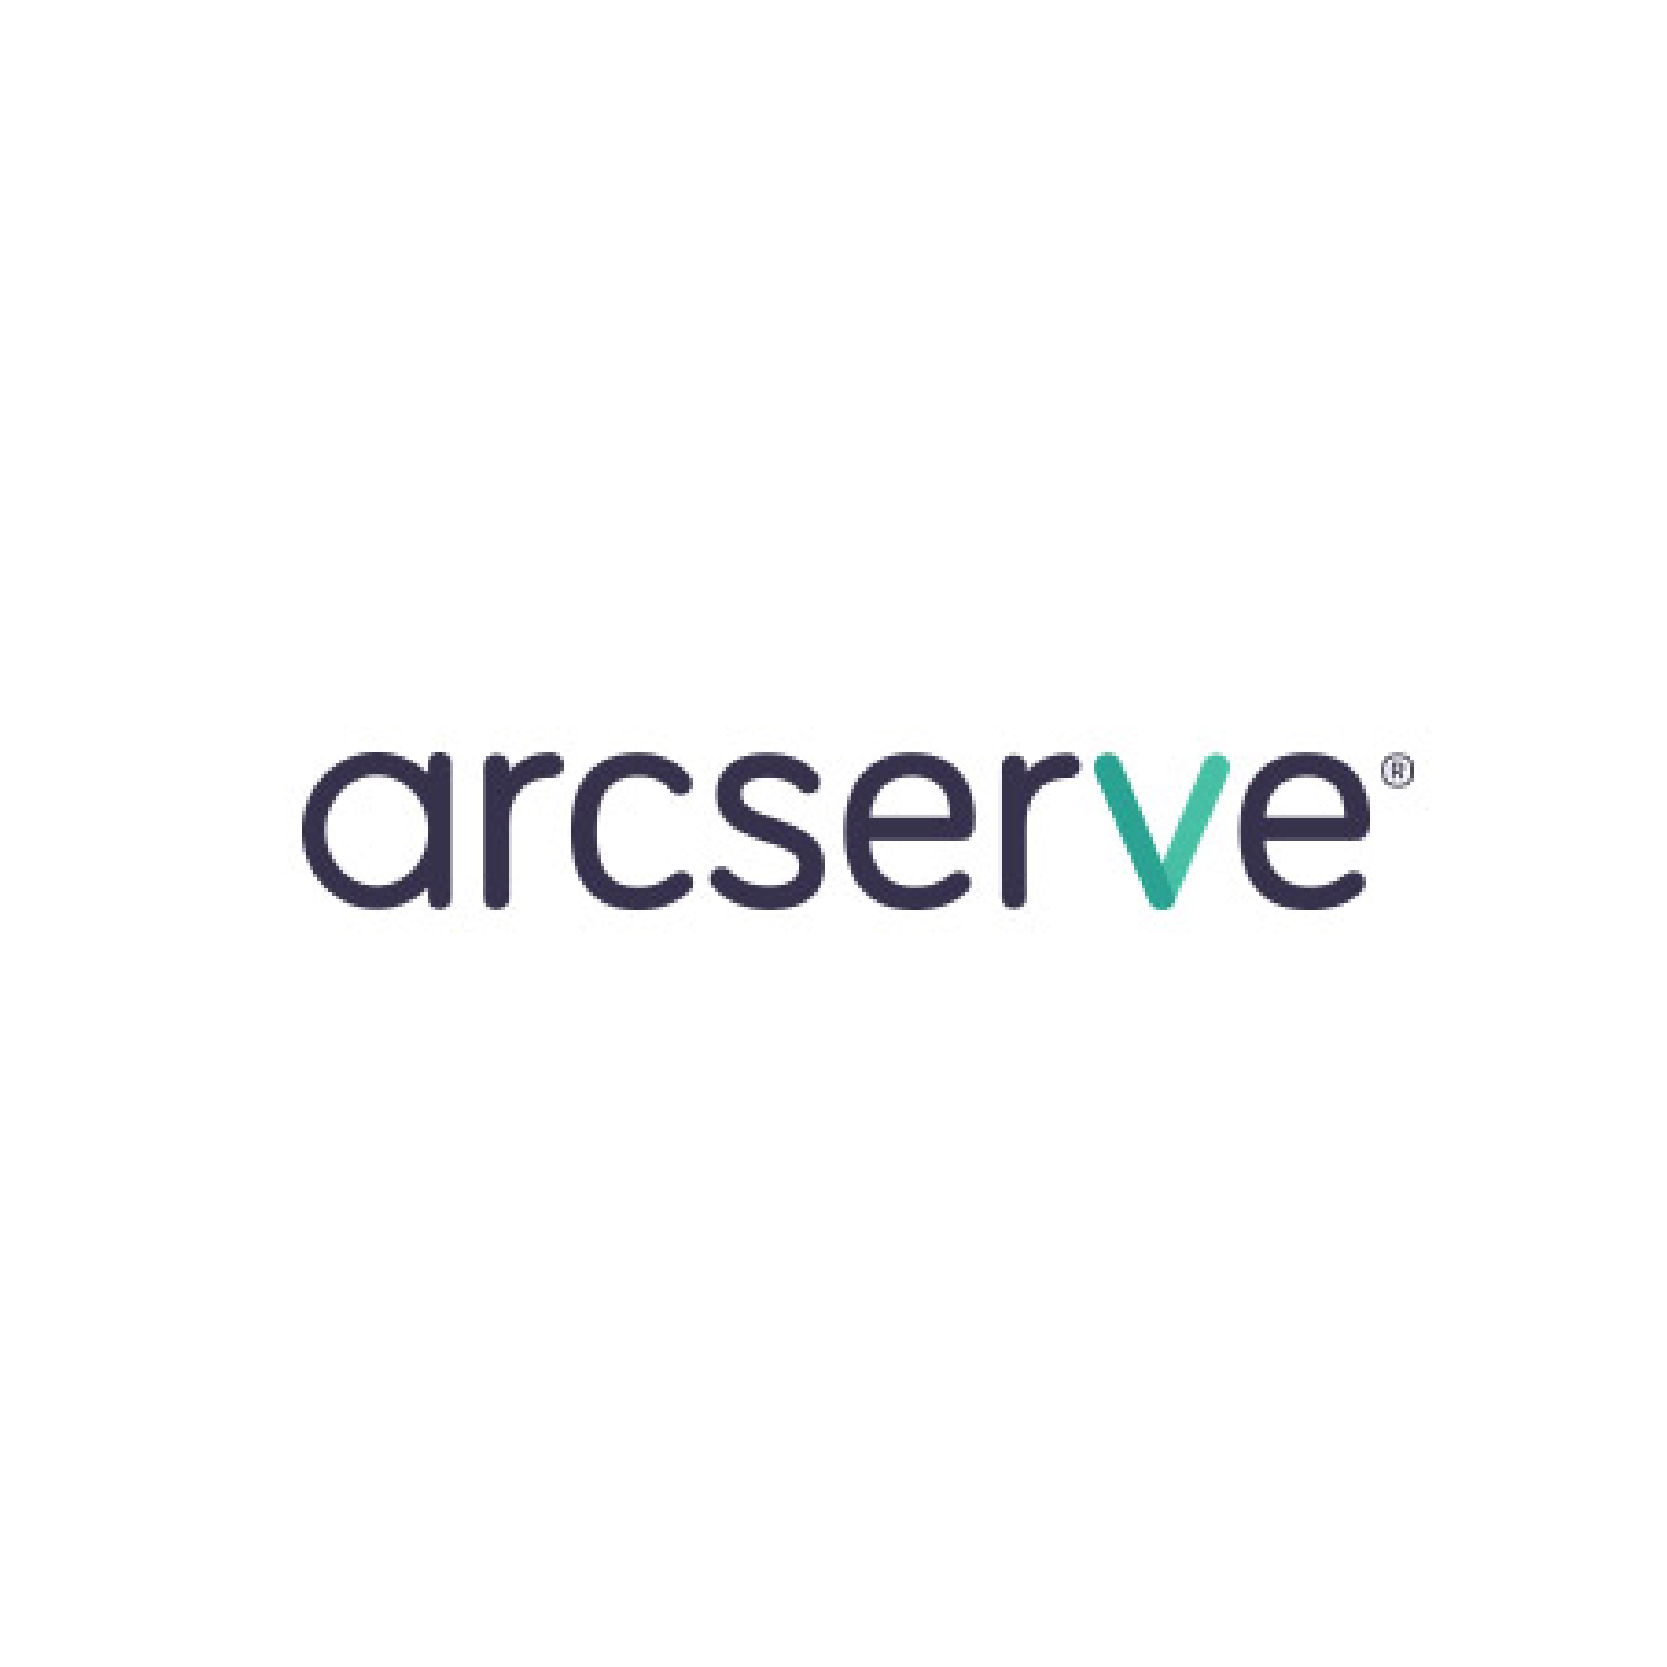 https://101datasolutions.co.uk/wp-content/uploads/2020/07/arcserve.png?_t=1596105106